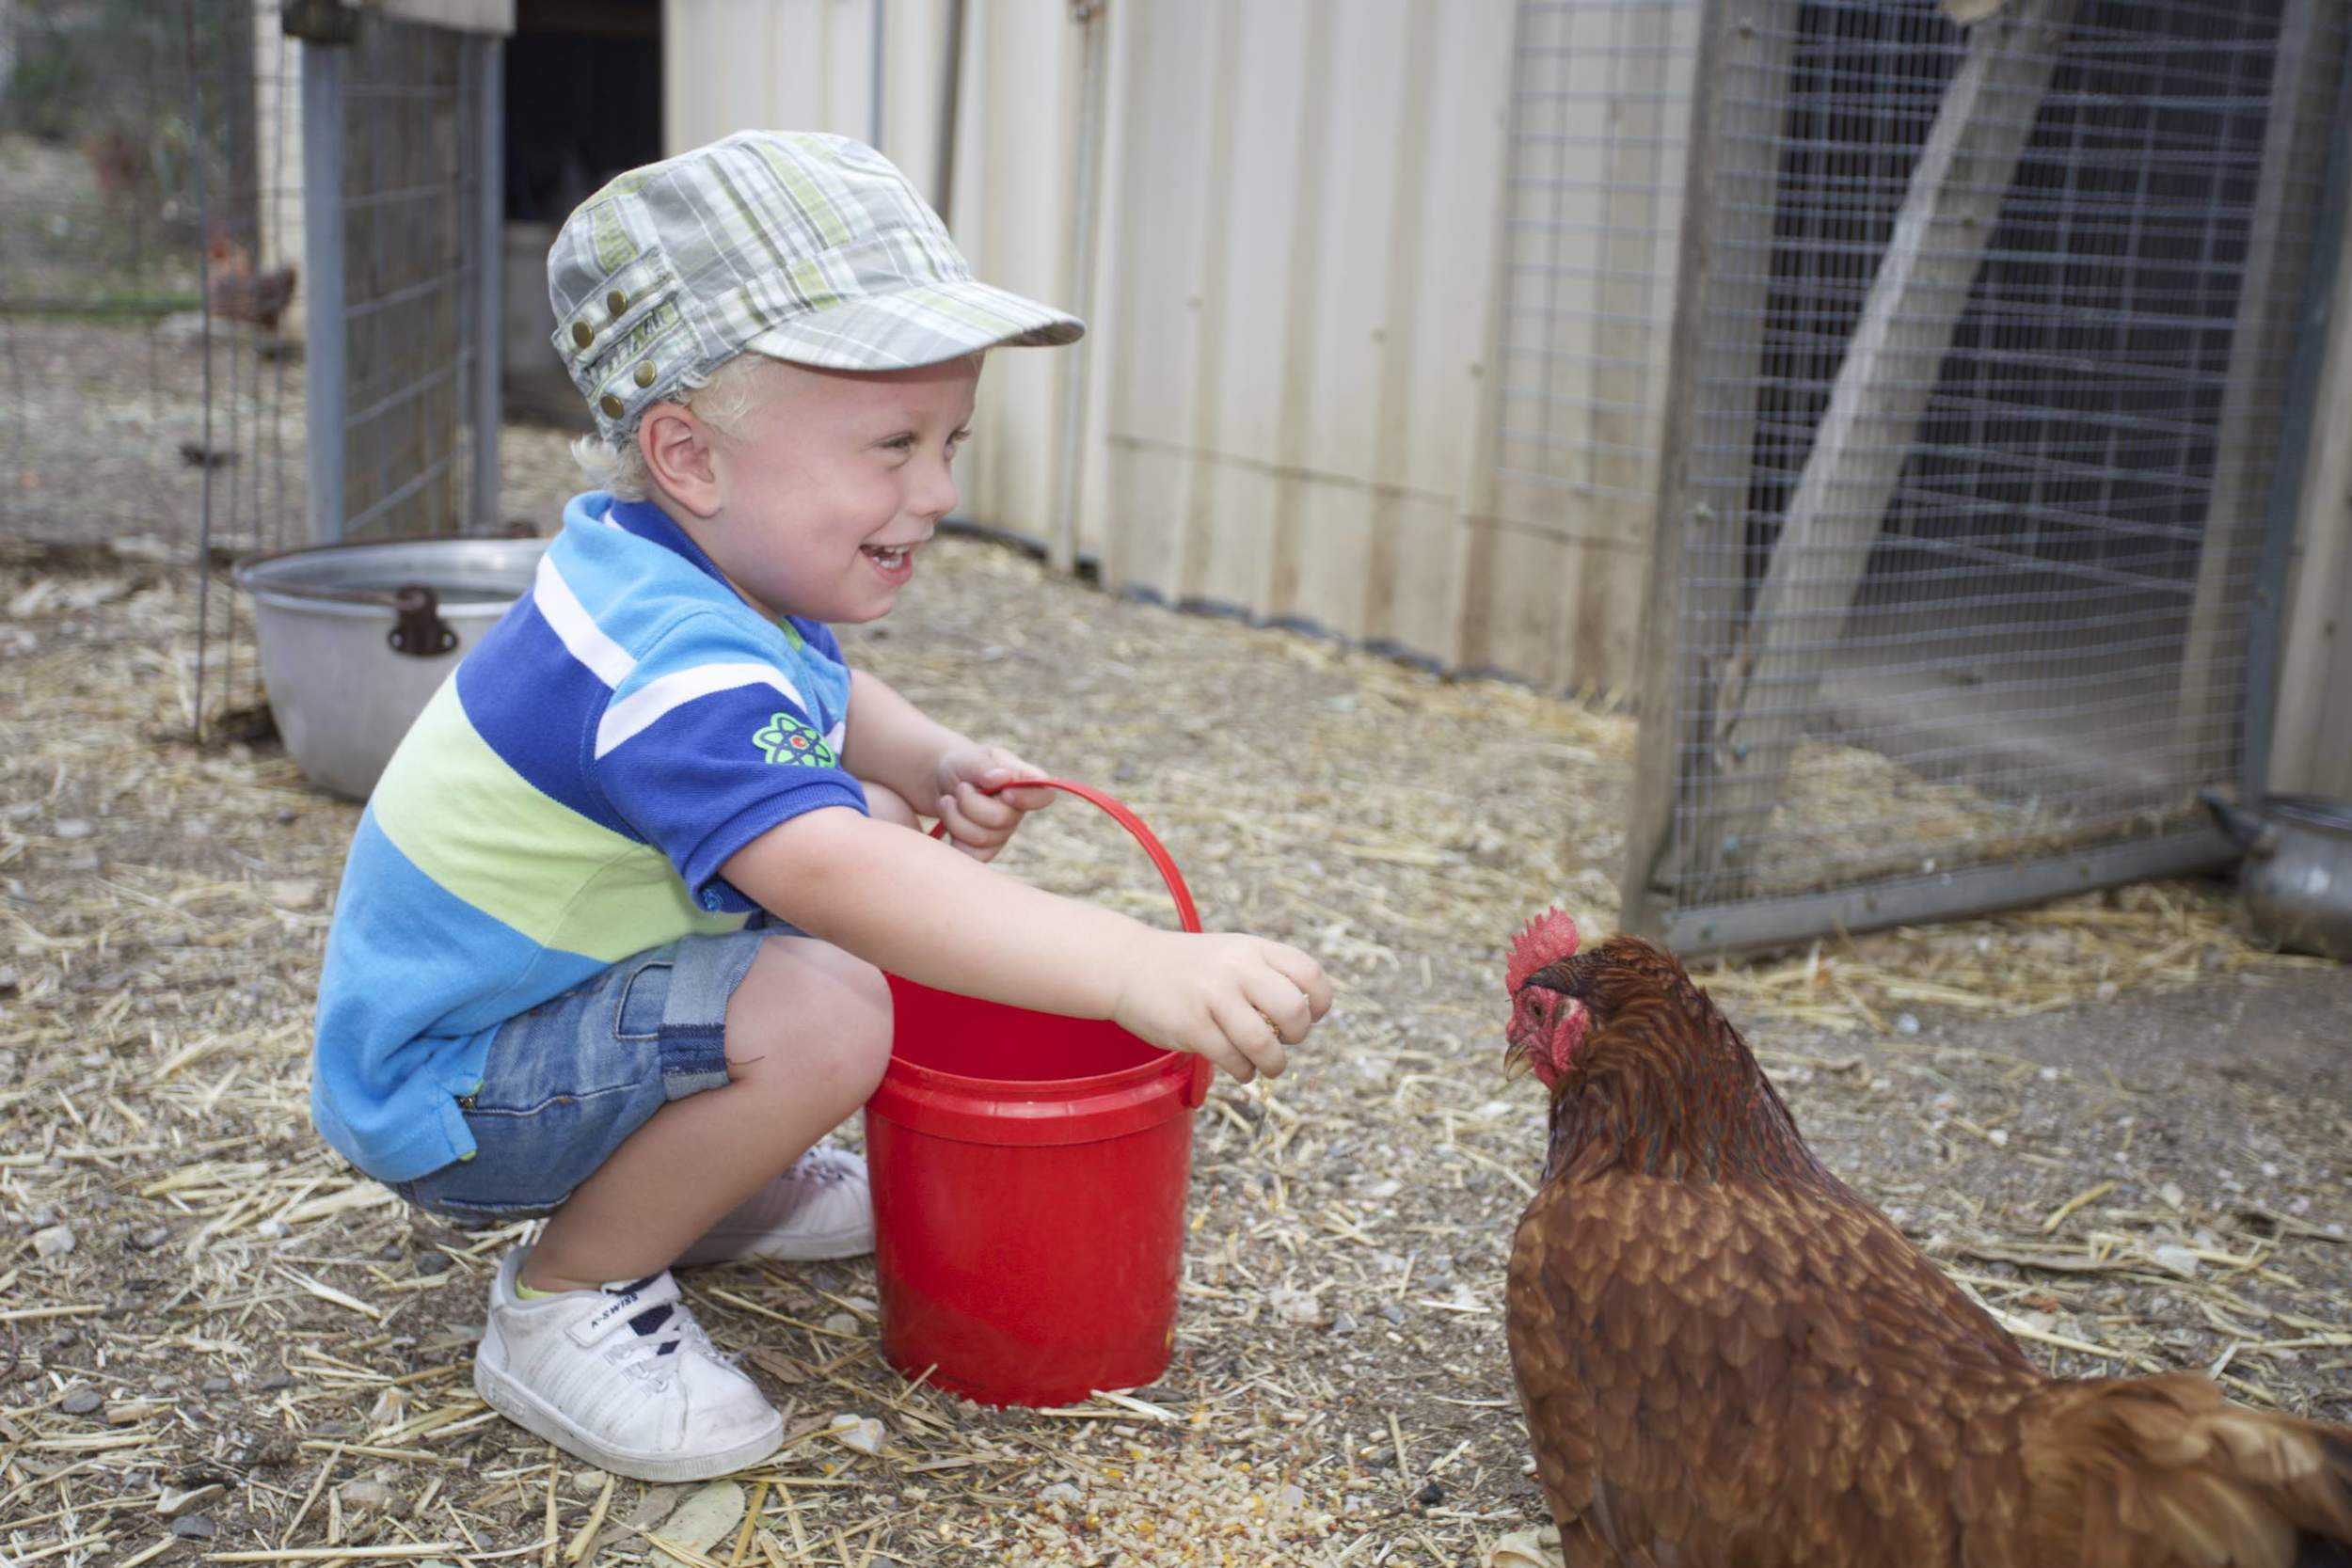 Feedingthe chickens and collecting eggs